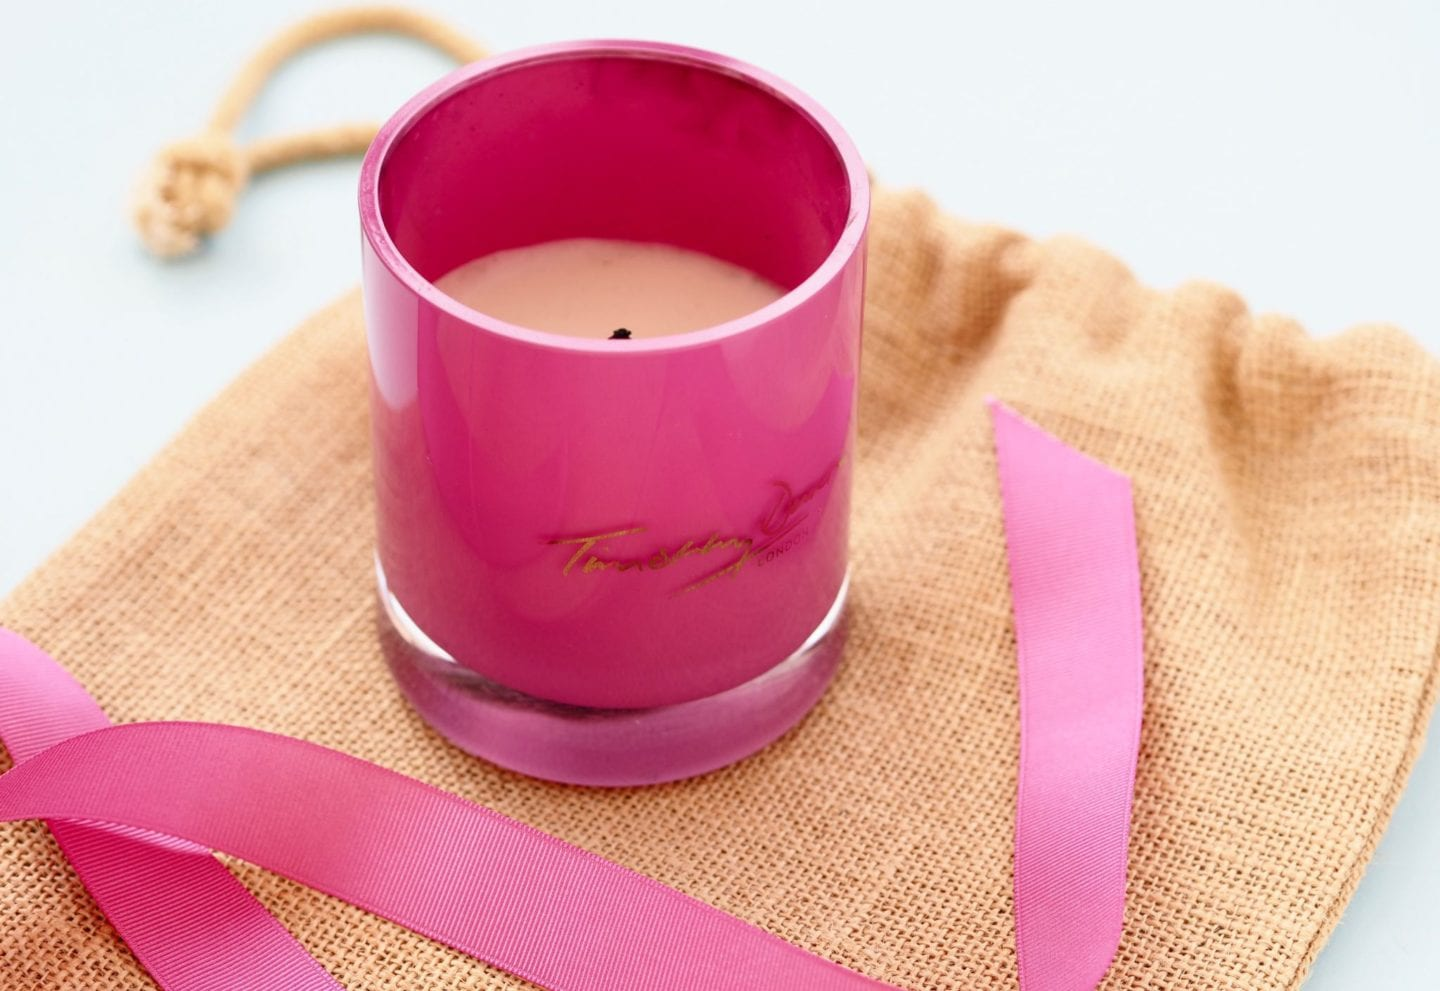 timothy-dunn-candle-roses-violet-